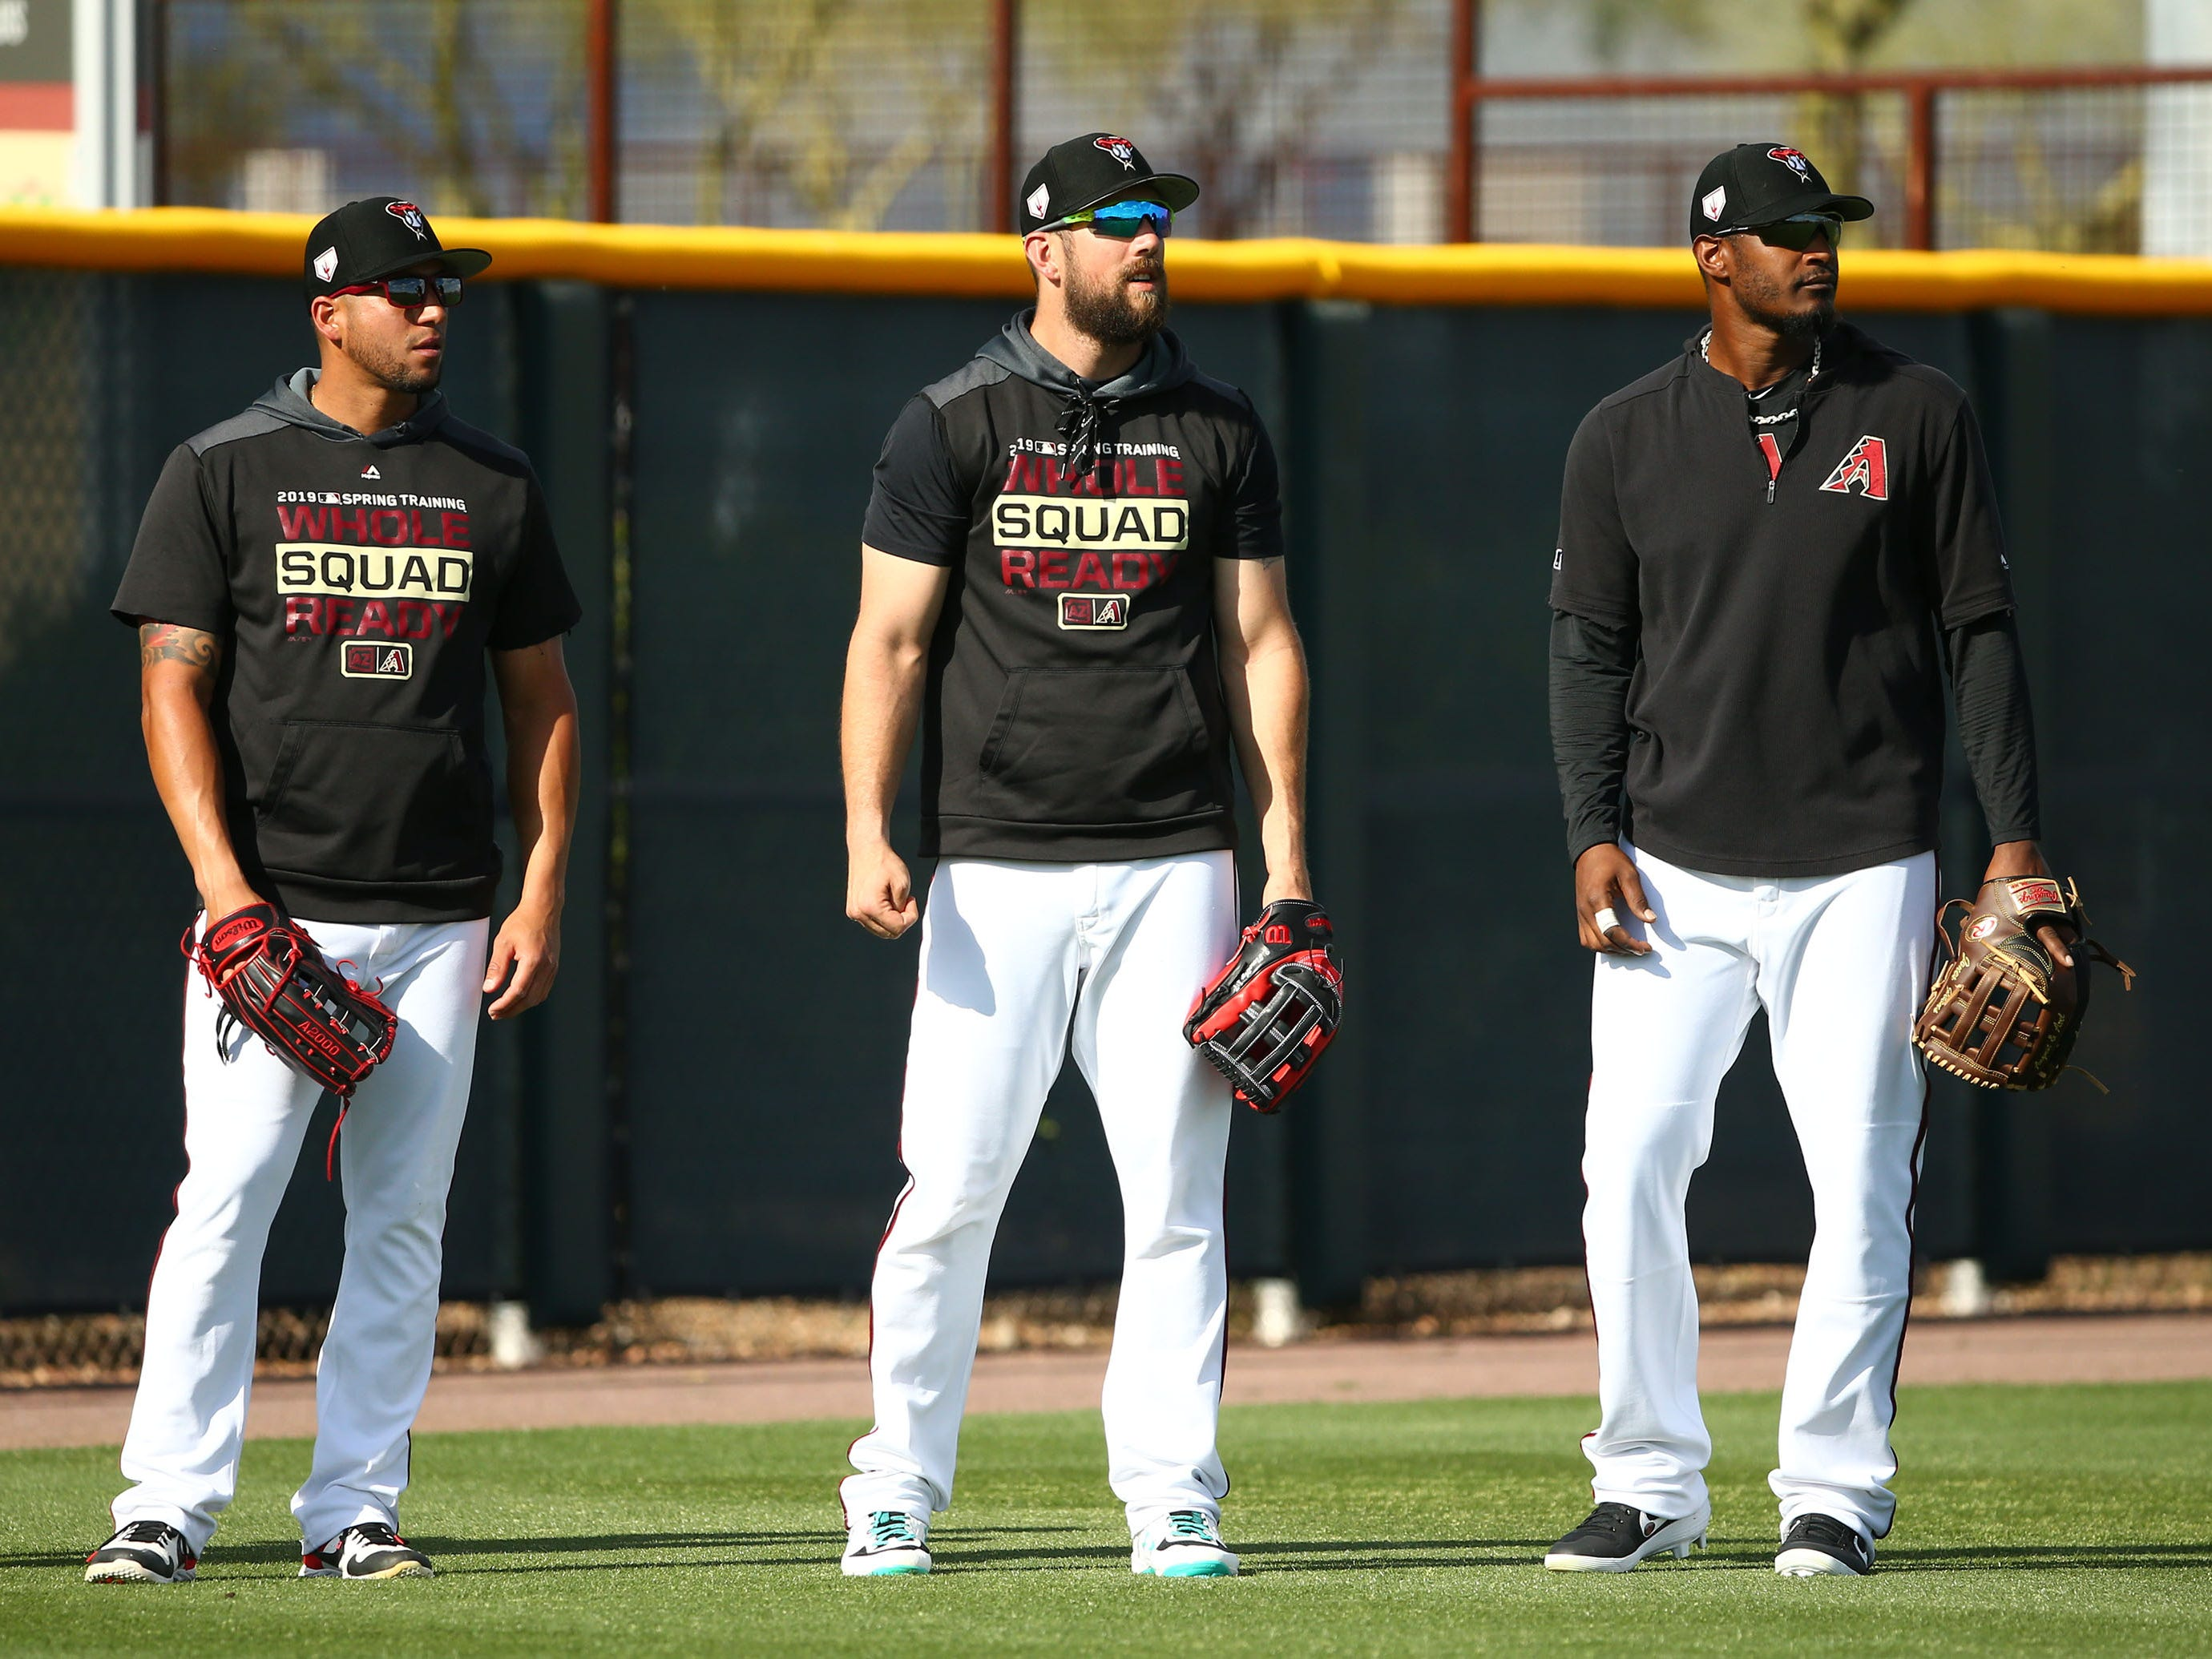 Arizona Diamondbacks outfielders David Peralta, Steven Souza Jr. and Adam Jones during spring training work-outs on Mar. 19, 2019 at Salt River Fields in Scottsdale, Ariz.